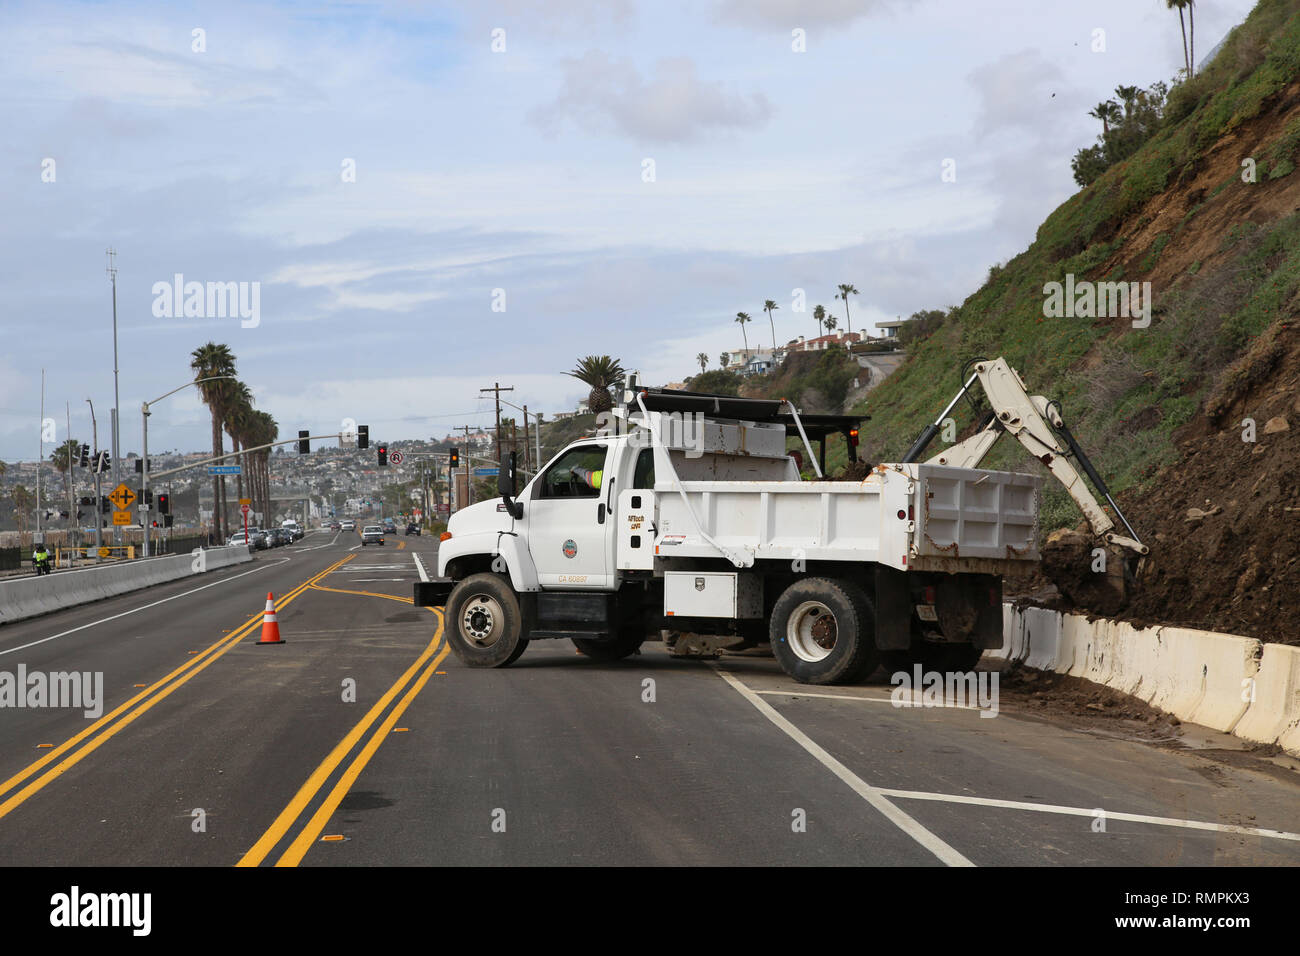 San Clemente, California, USA  15th Feb, 2019  A landslides due